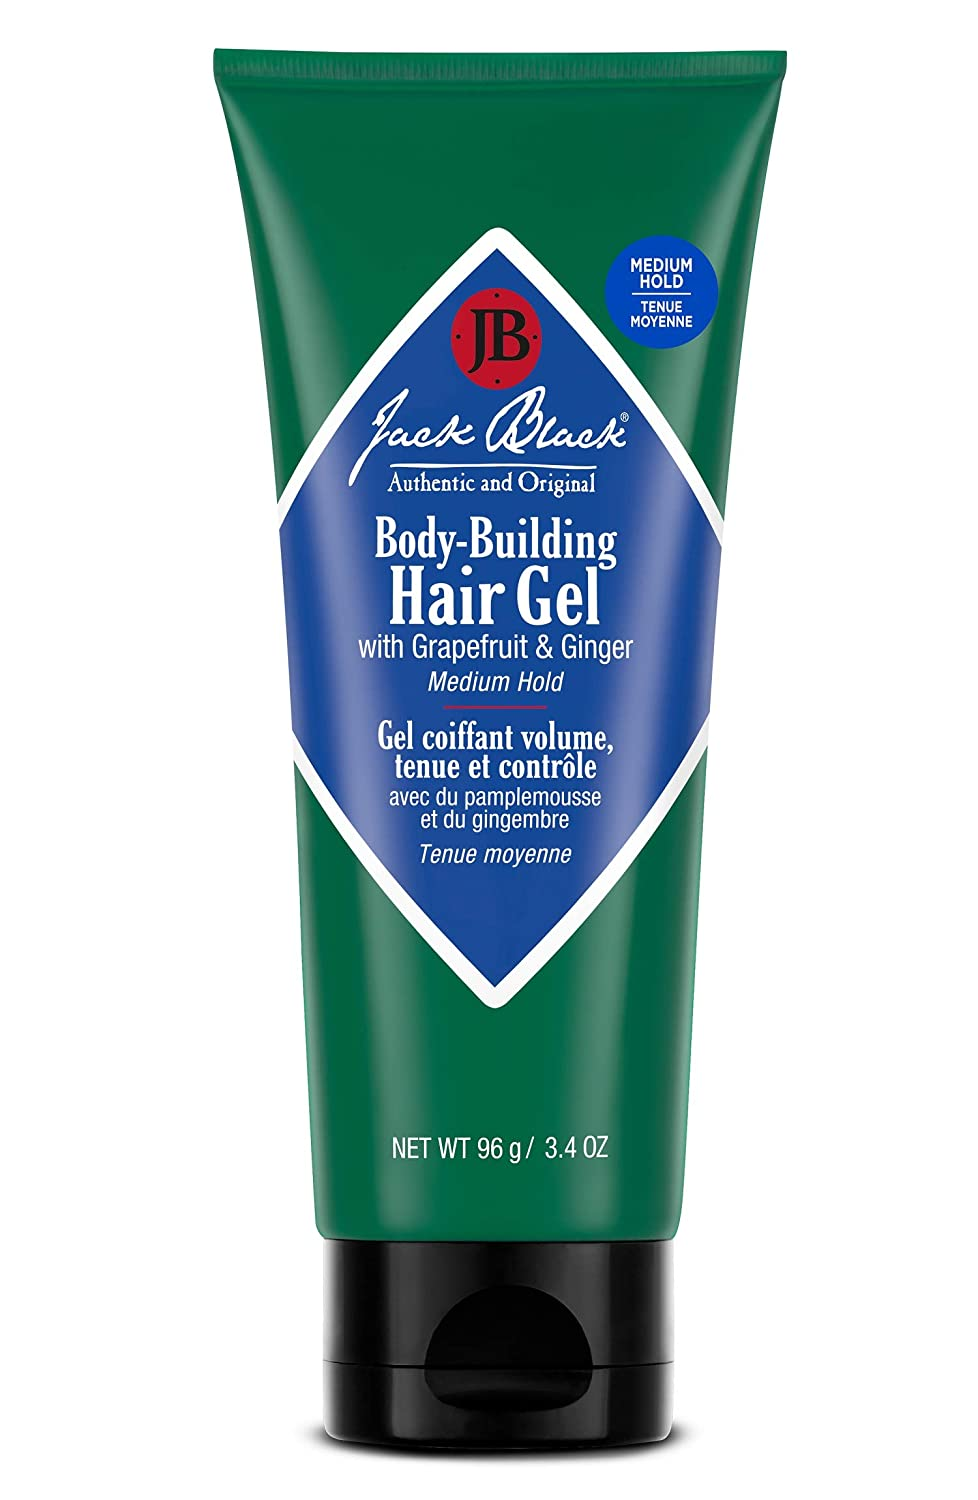 Body-Building Hair Gel